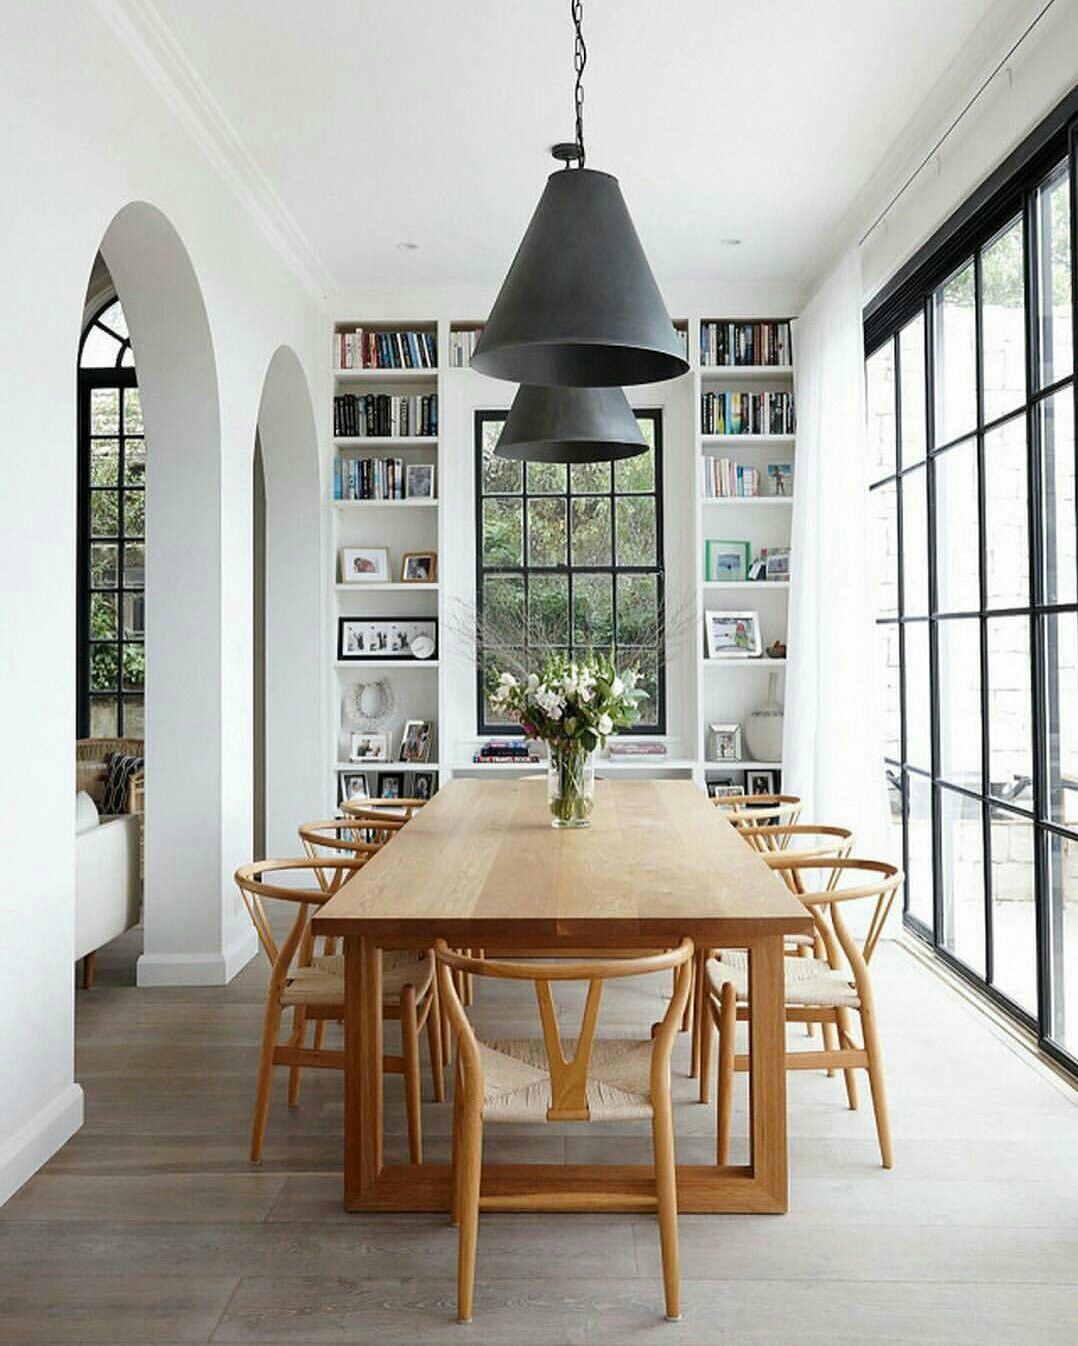 Modern Global Style Dining Room Design Featuring Built In Shelves A Large Wood Table Wishbone Side Chairs And Black Vintage Industrial Pendant Light